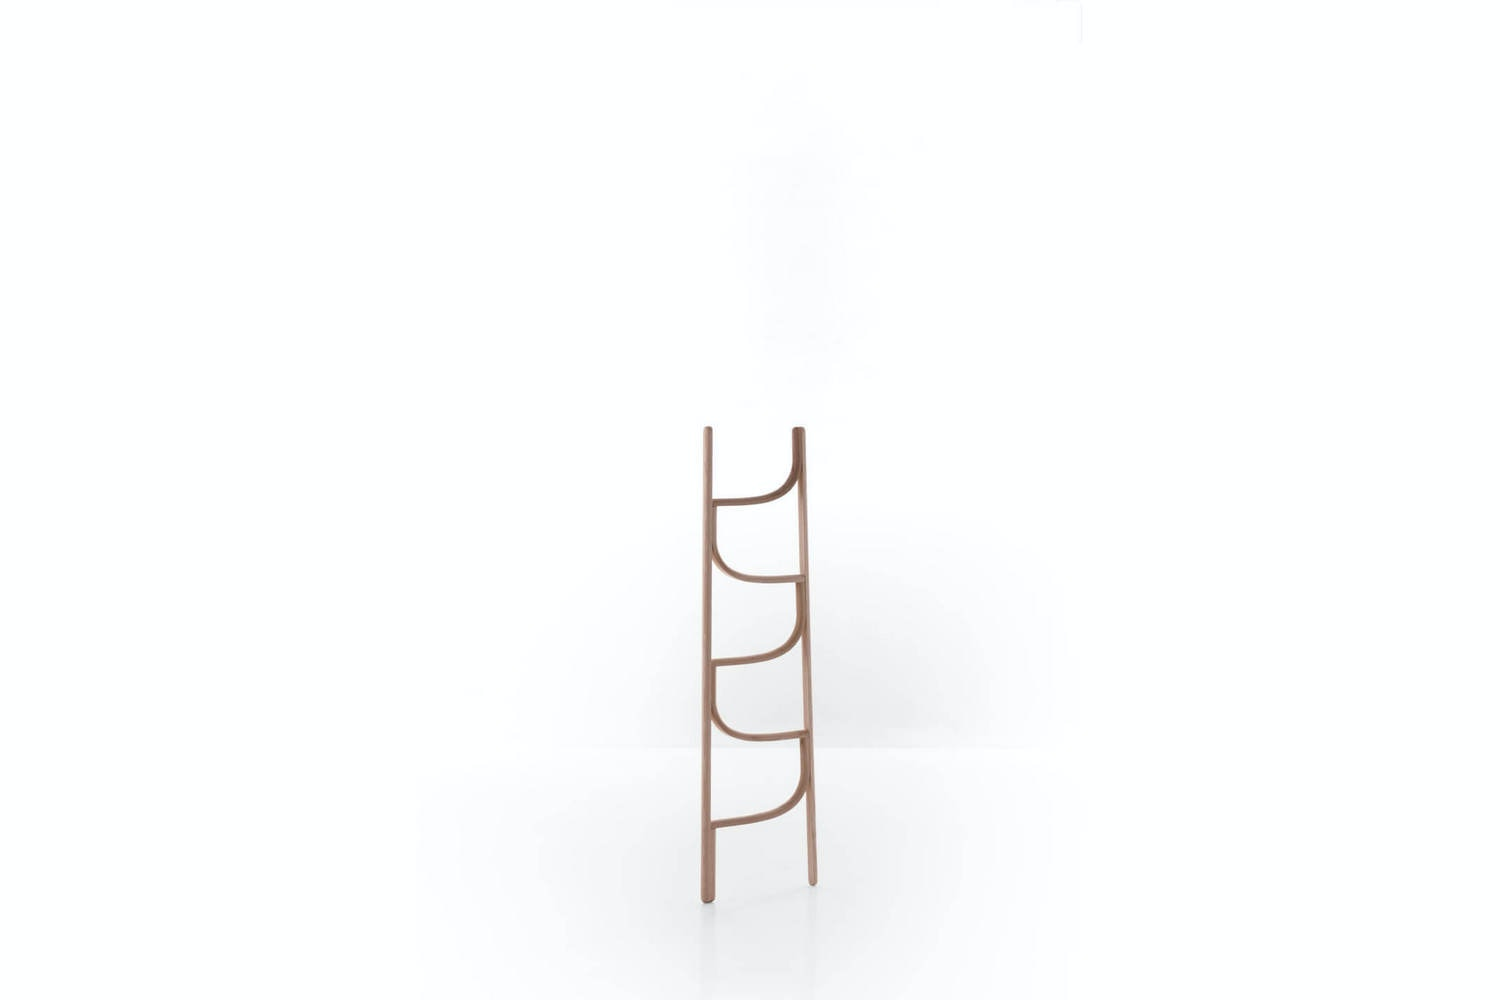 Ladder by Charlie Styrbjorn Nilsson for Wiener GTV Design